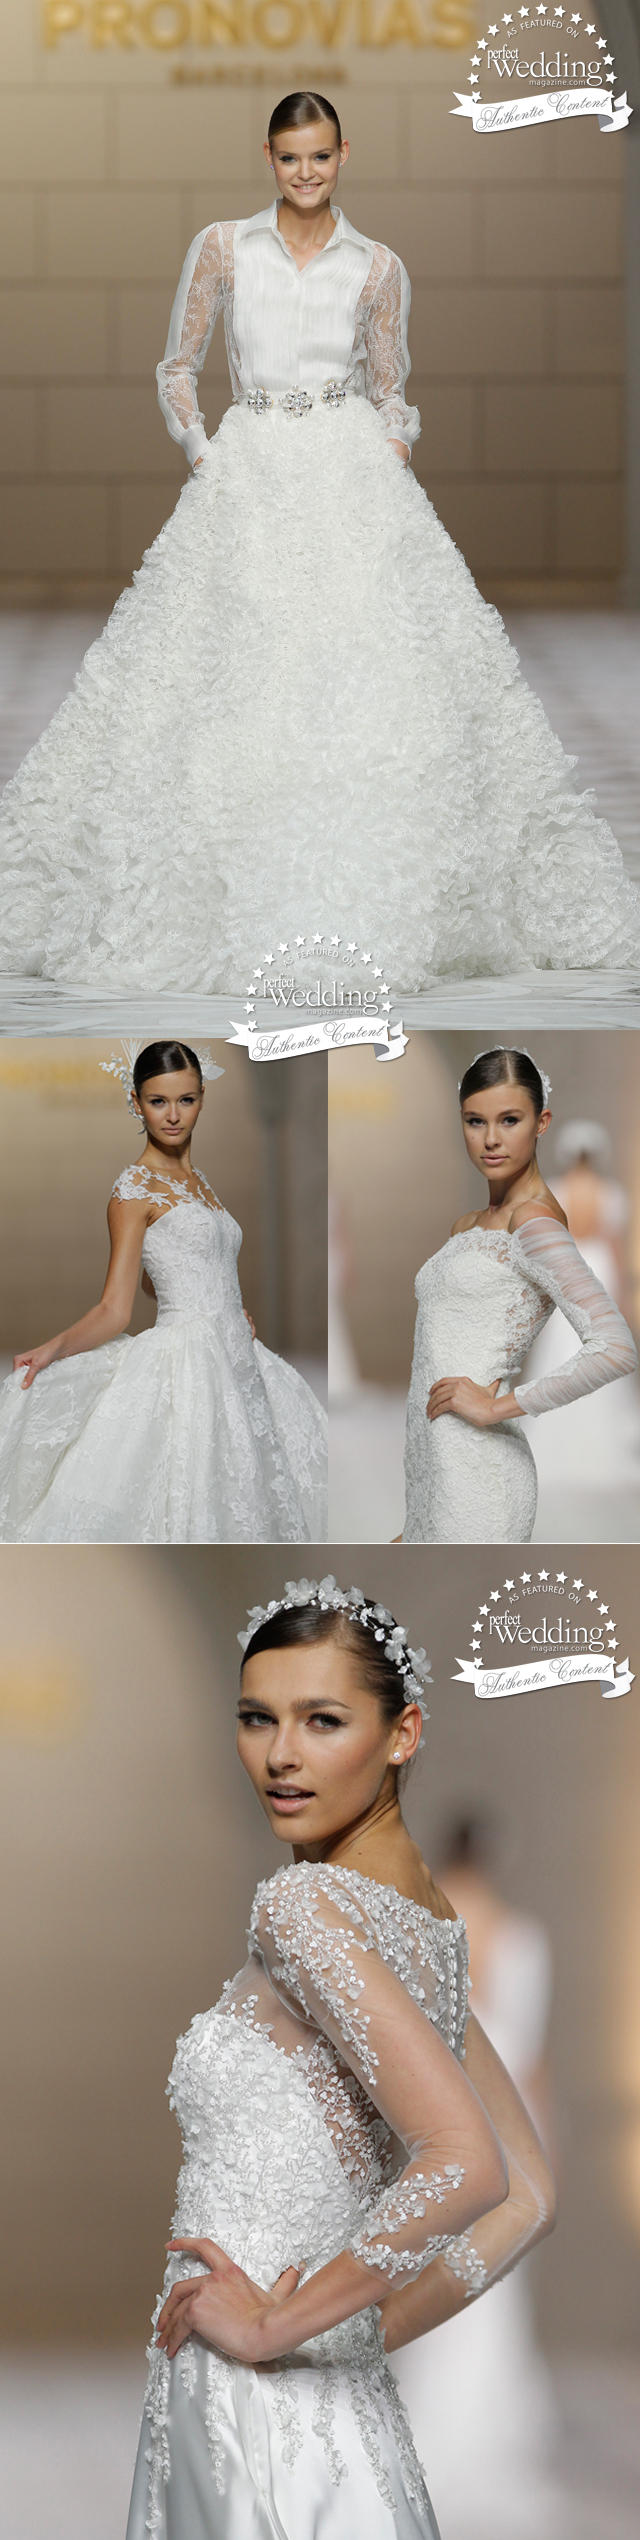 Pronovias, Pronovias 50th Anniversary, Atelier Pronovias, Perfect Wedding Magazine